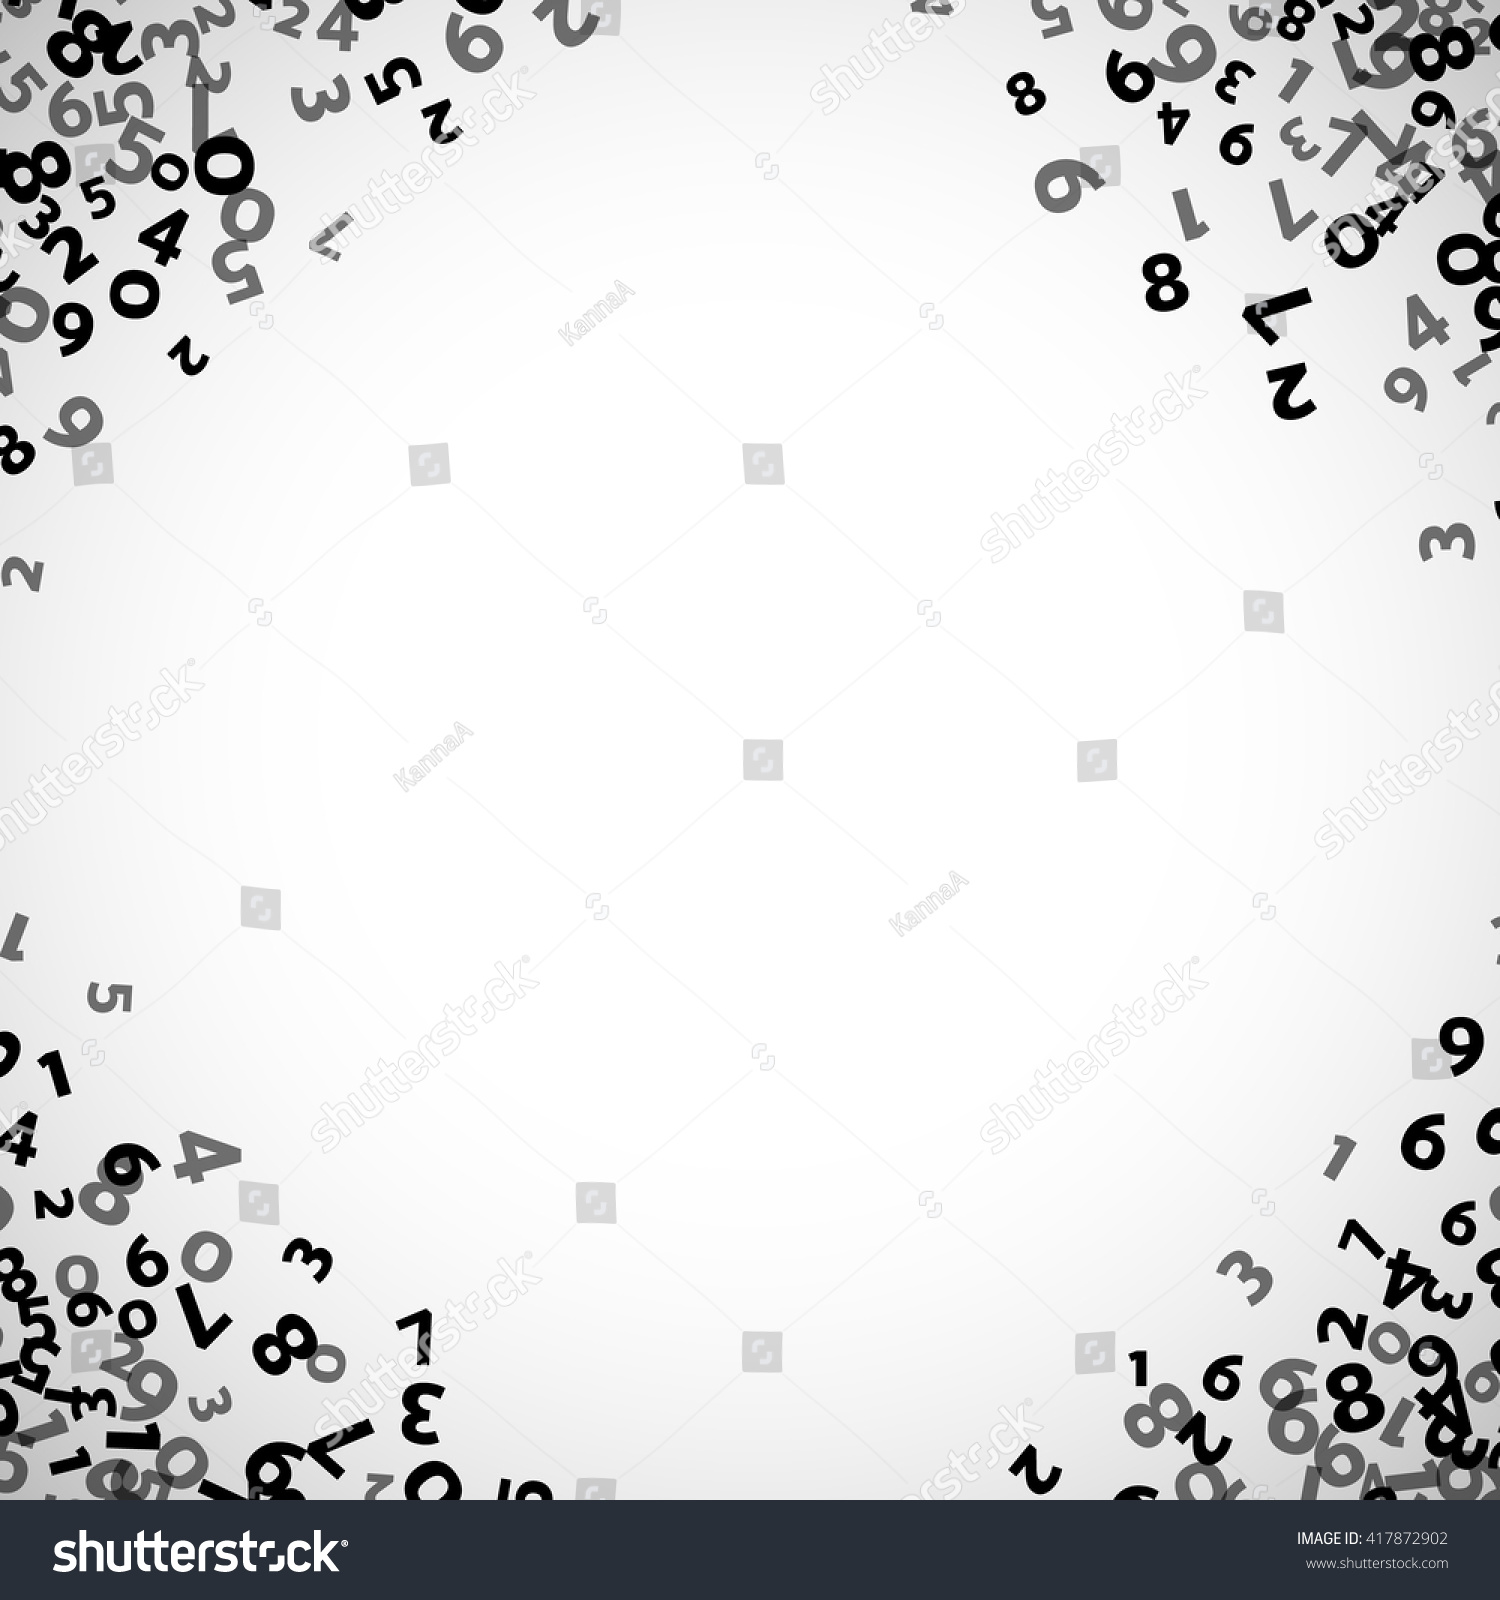 Abstract Math Number Background Vector Illustration For Business Design Black White Colors Random